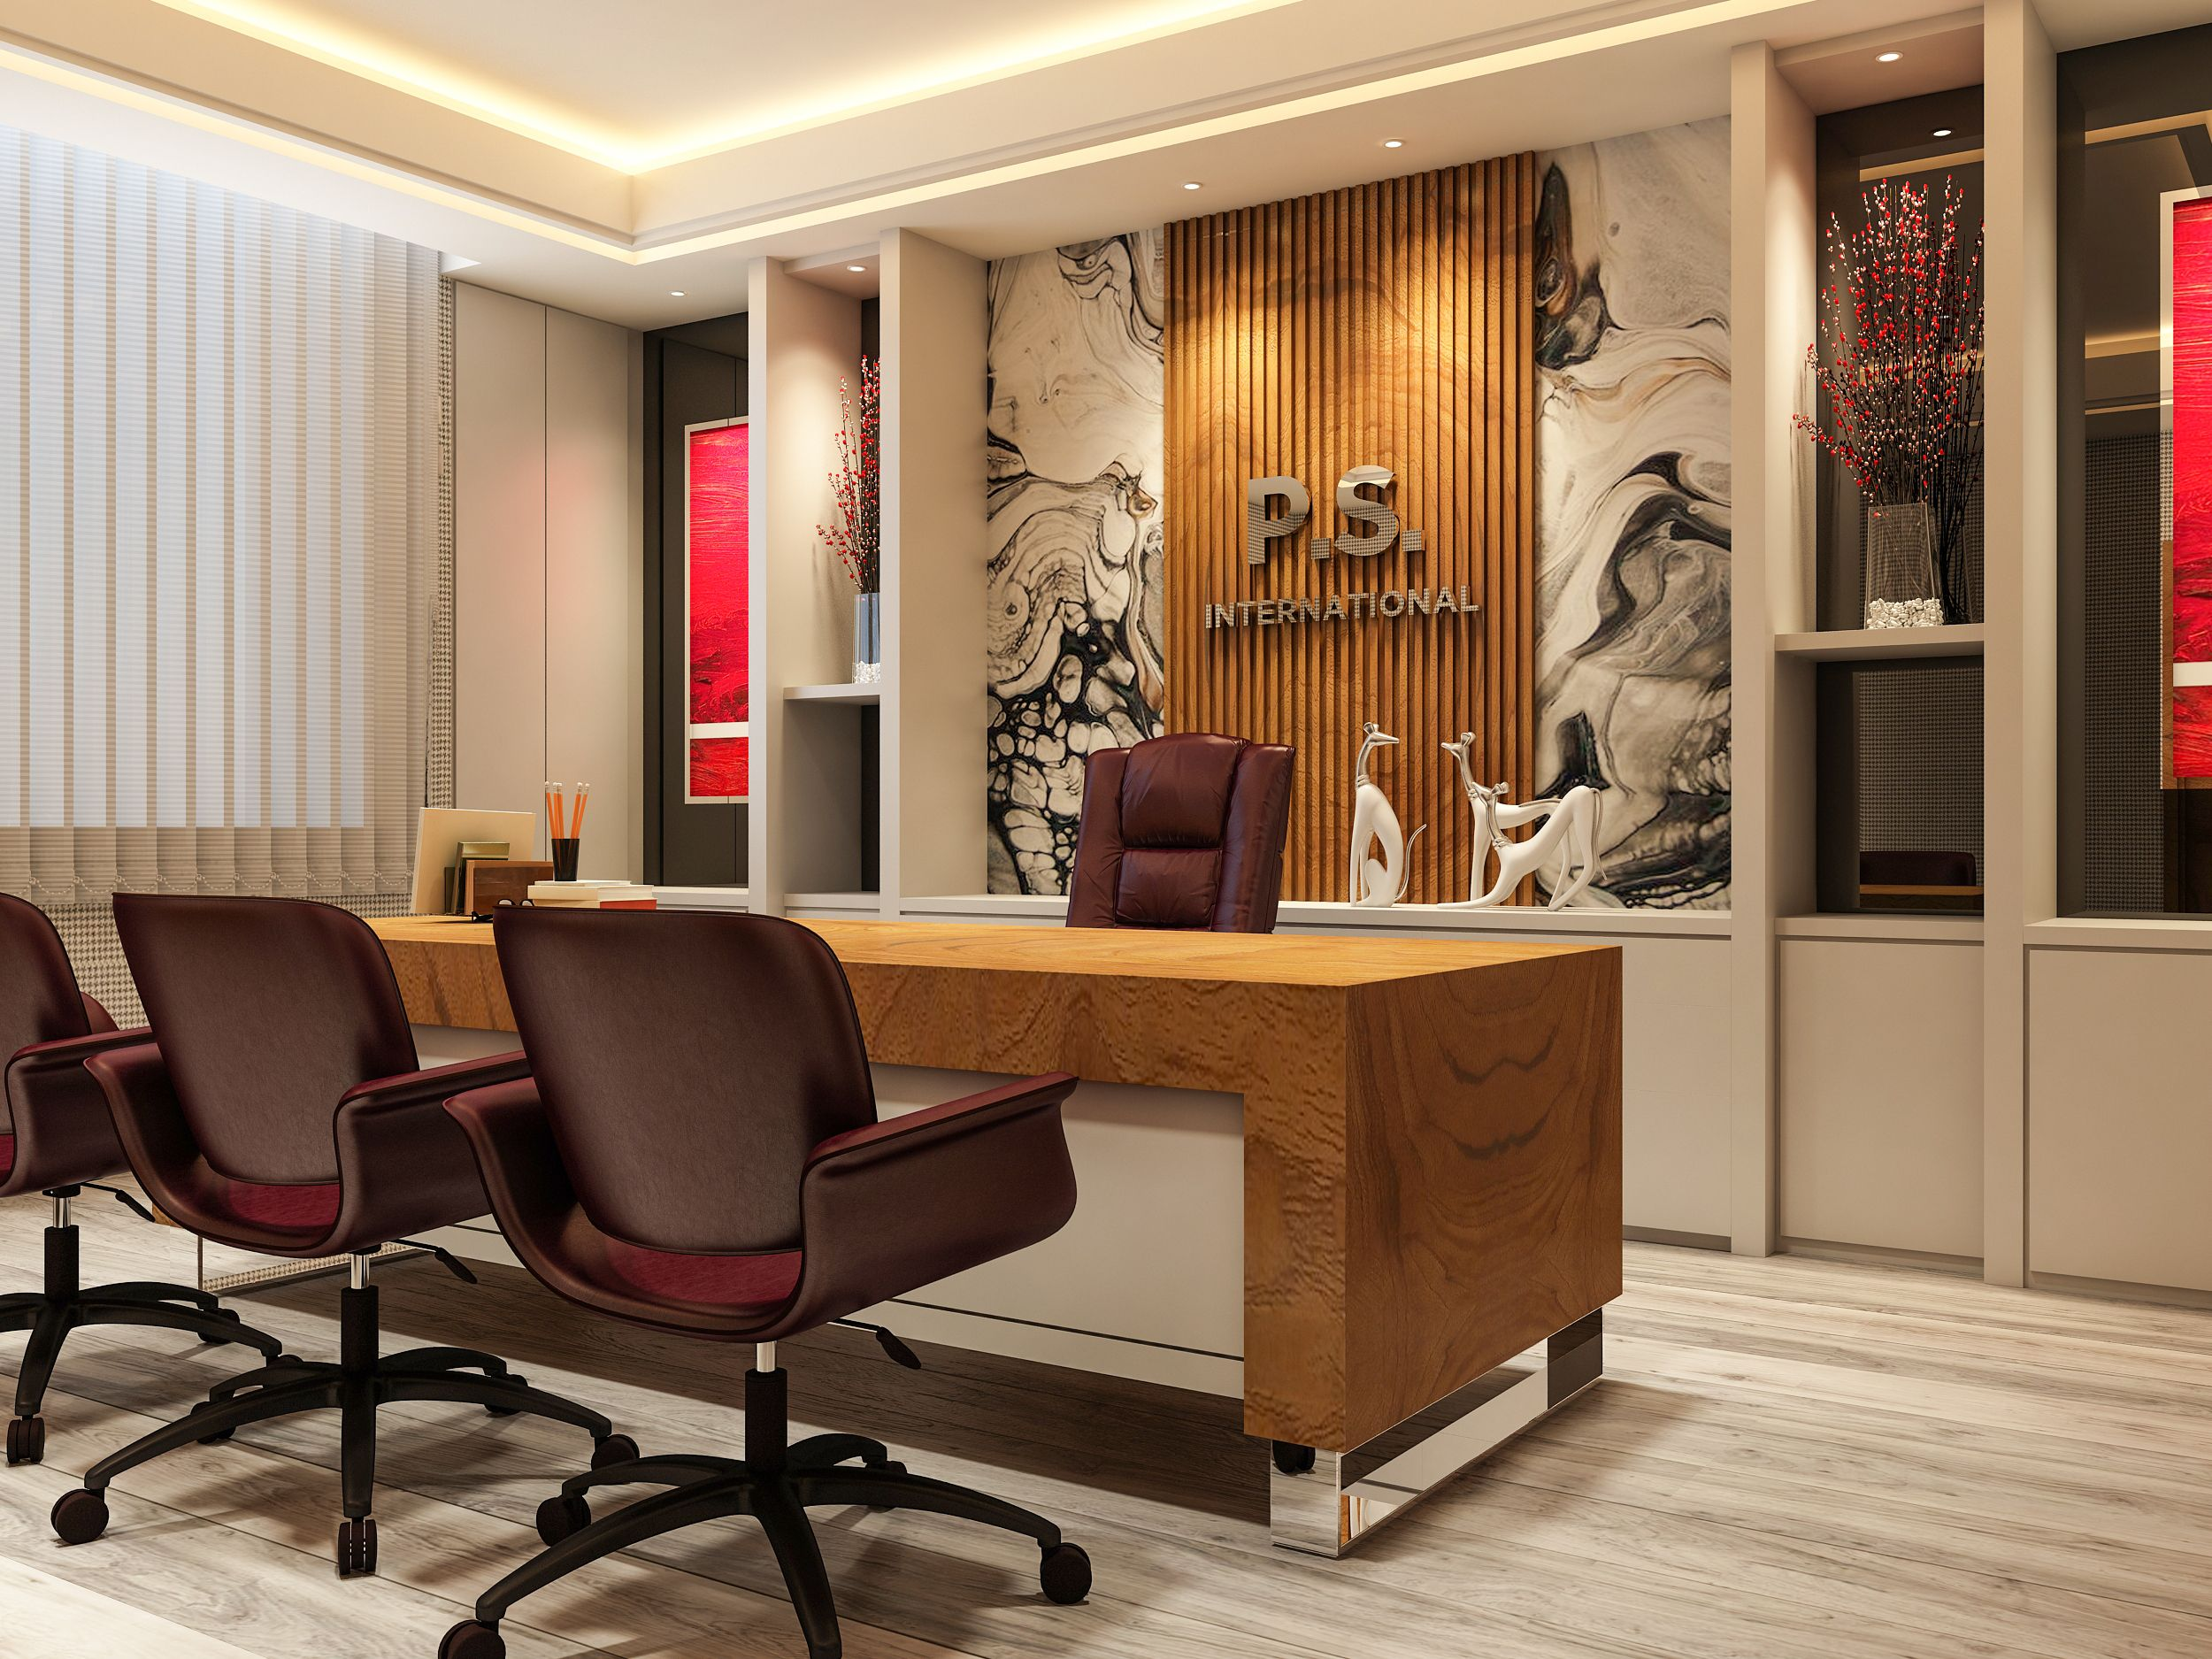 Pin By David Mbugua On Home Decor Office Interior Design Office Interior Design Modern Modern Office Interiors